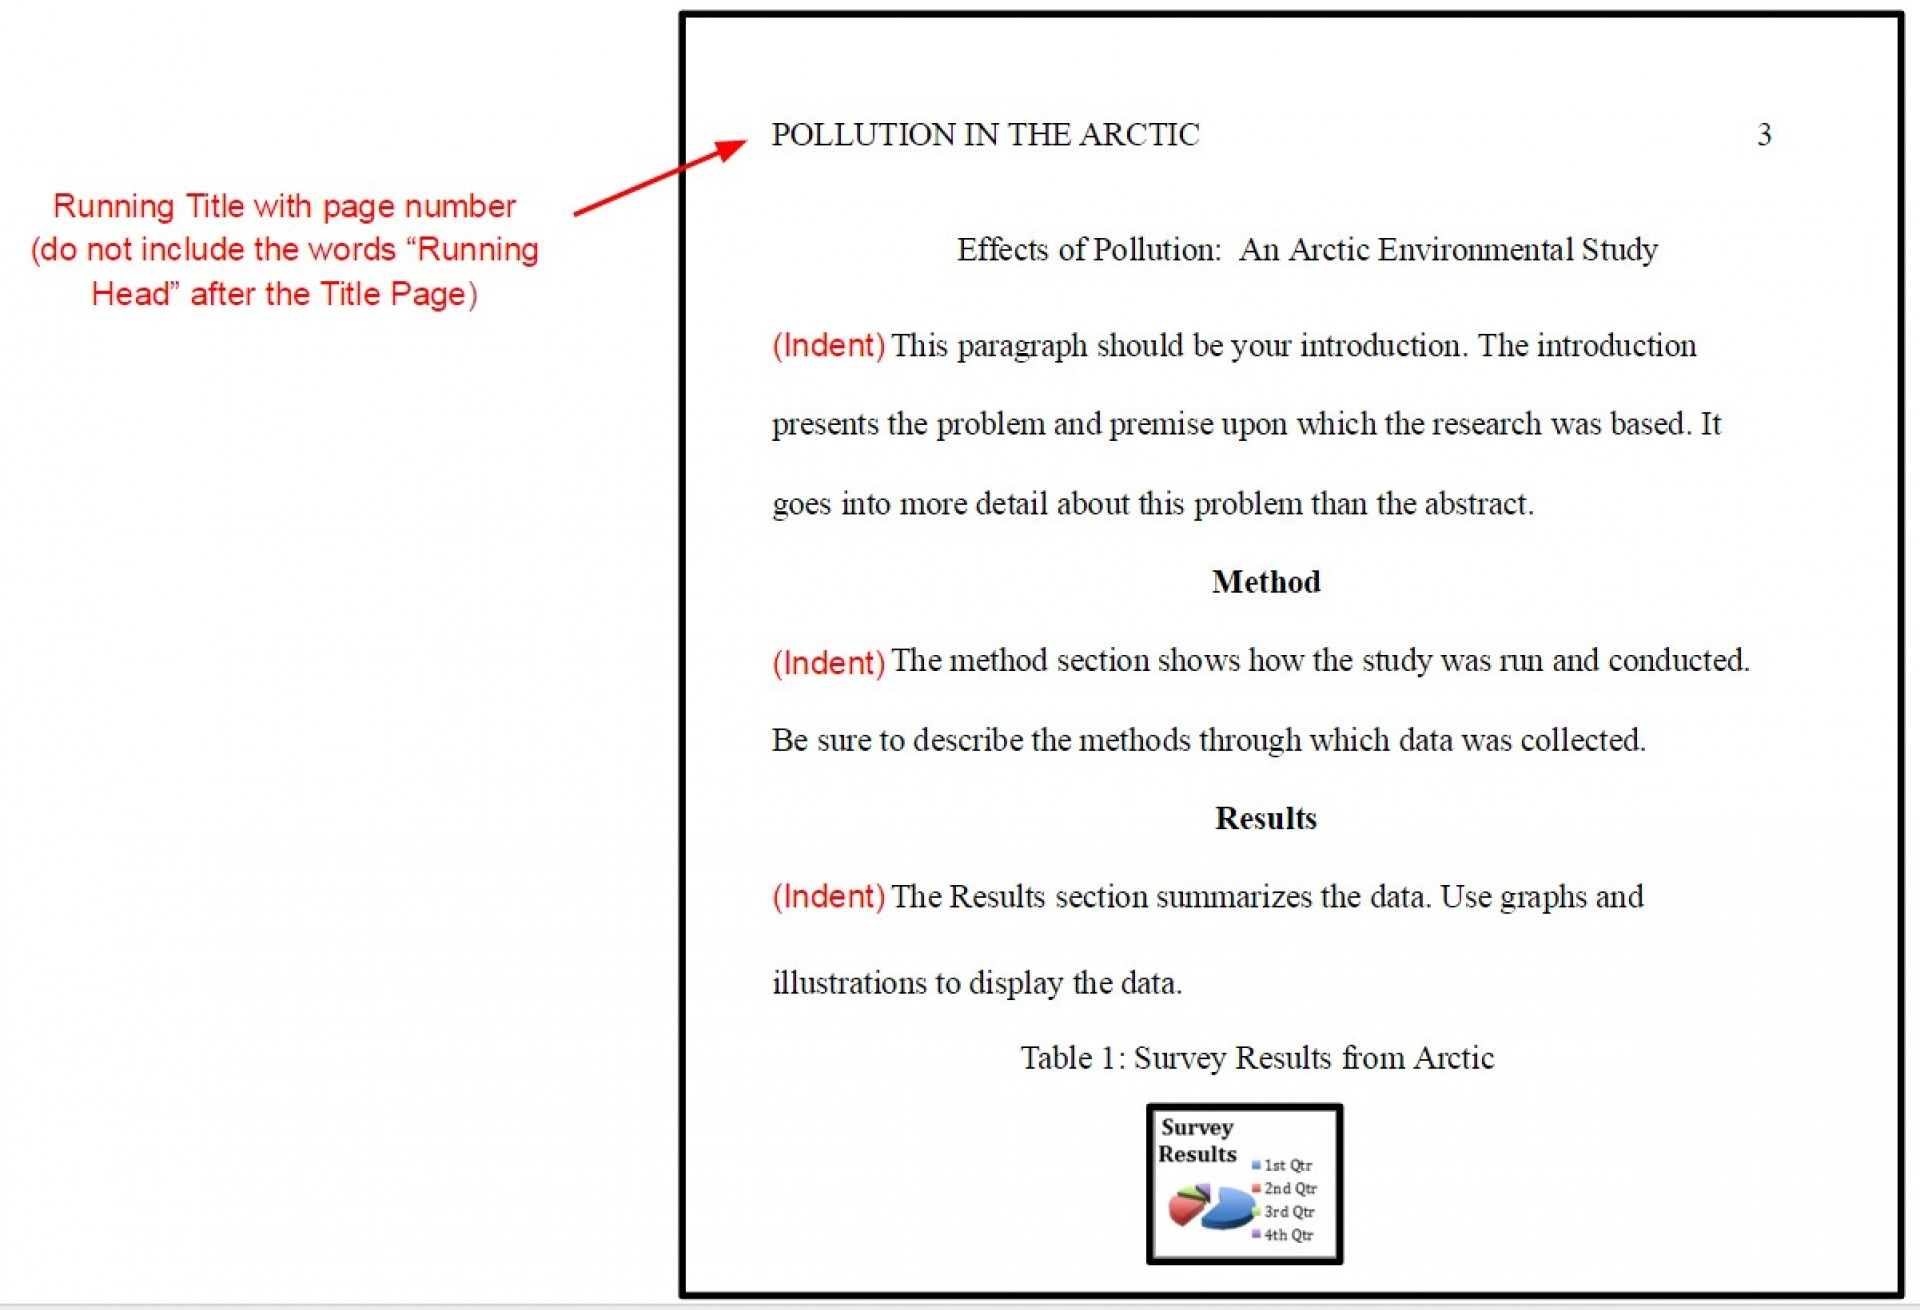 003 Example Of Research Paper Written In Apa Format Excellent A Sample 1920